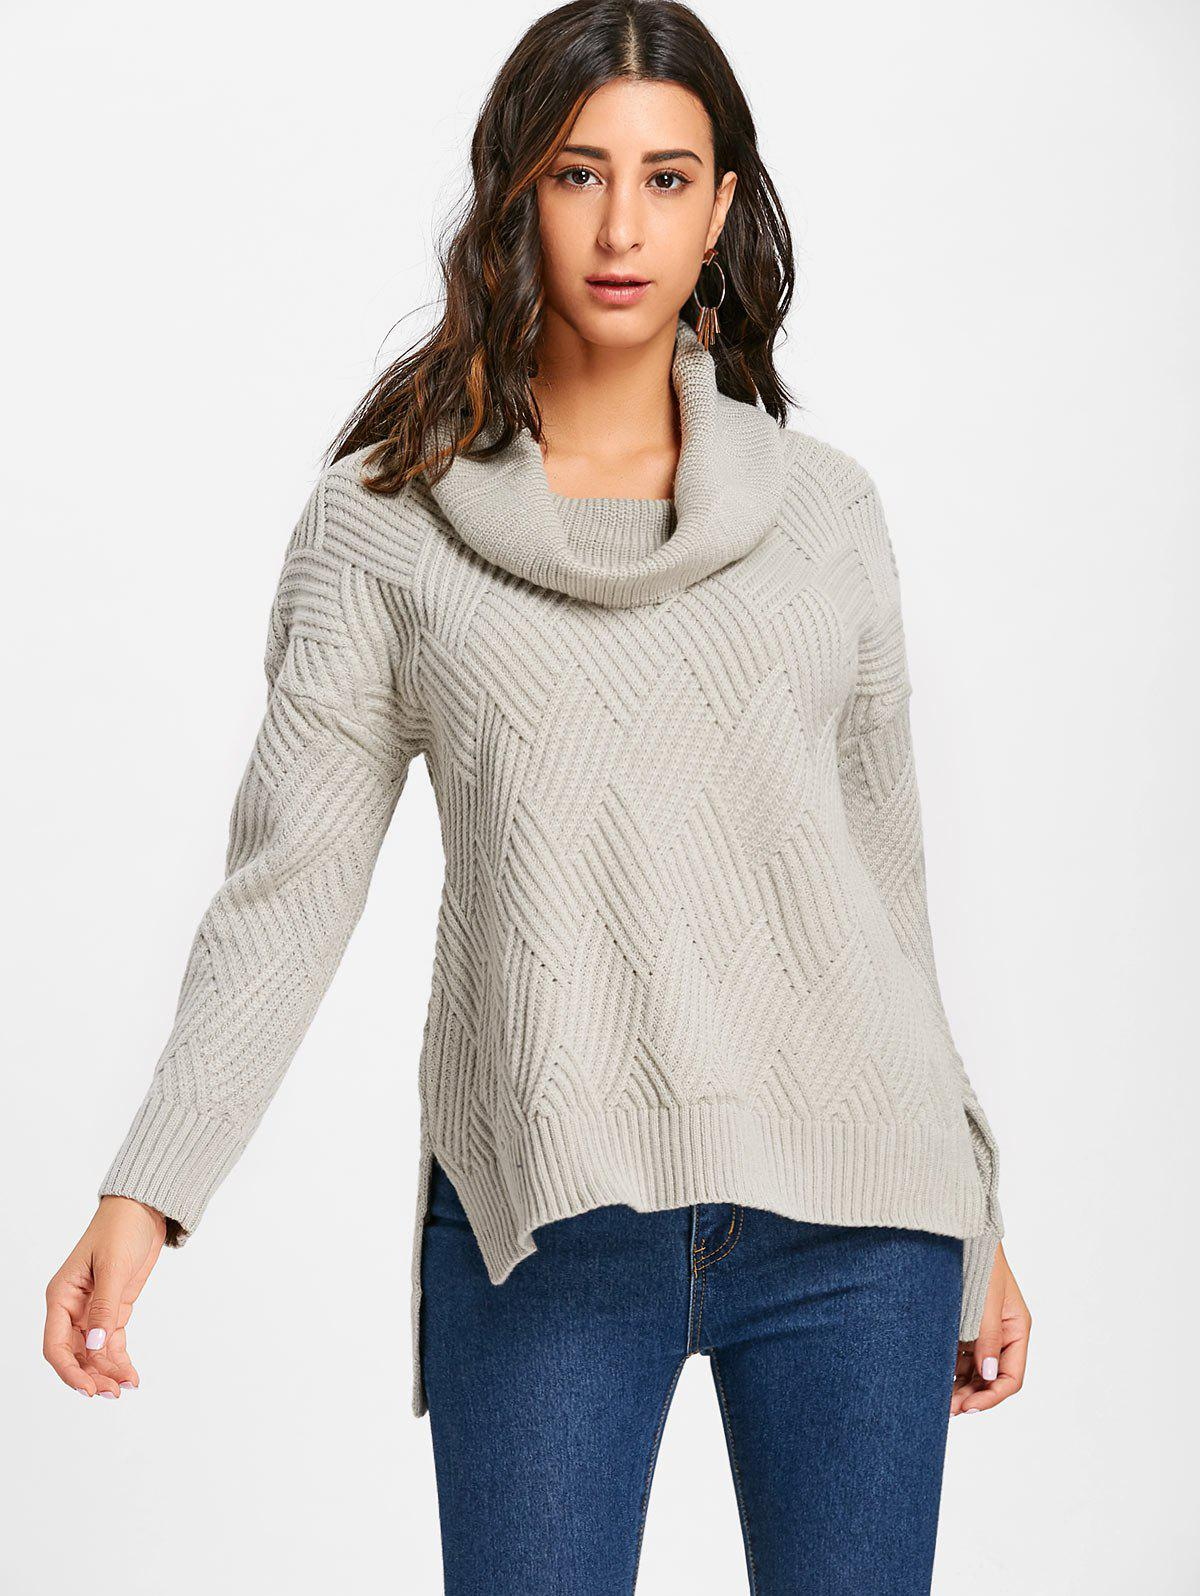 Cowl Neck Side Slit Knitted Sweater - GRAY M